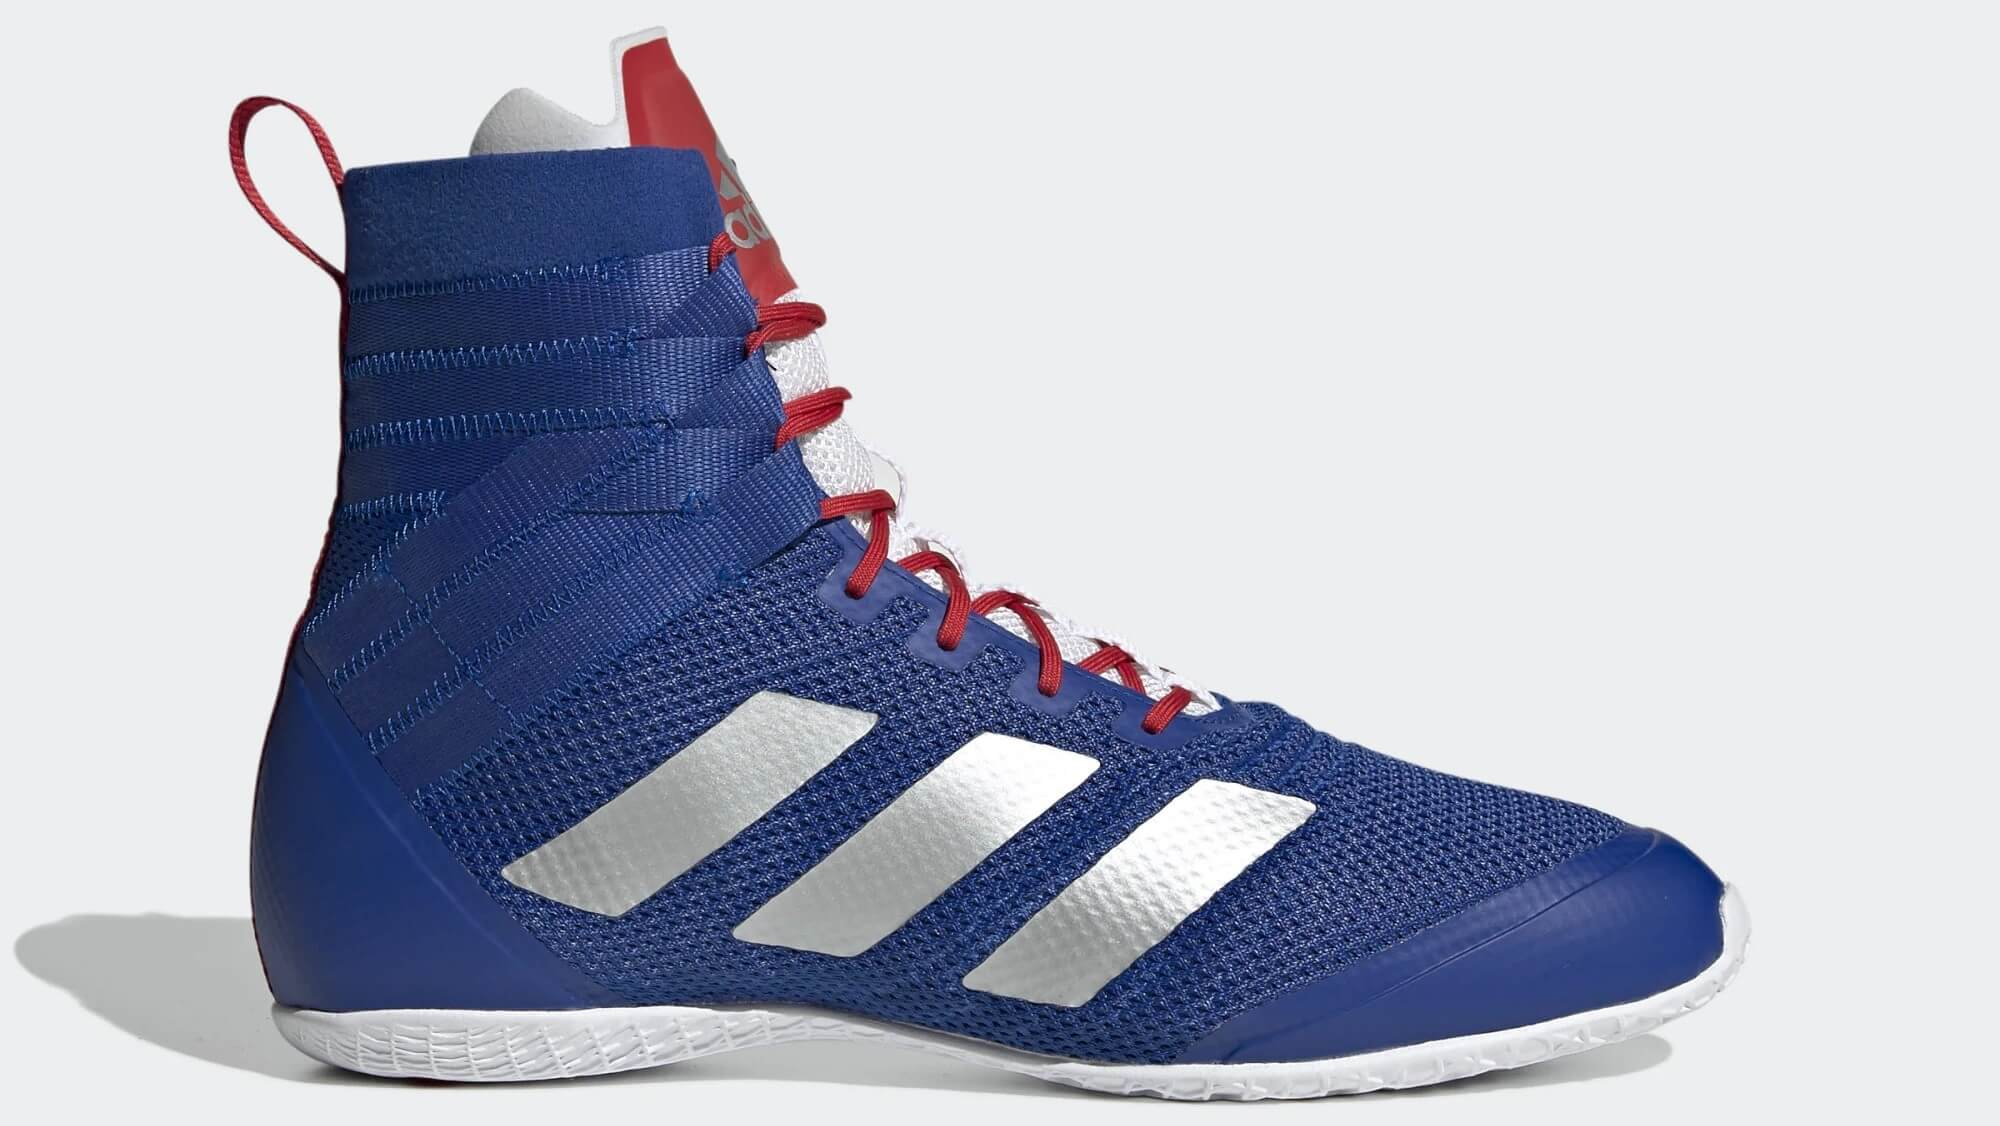 Profile of Blue white and red adidas Speedex 18, Shoe Guide's choice for the best boxing shoes